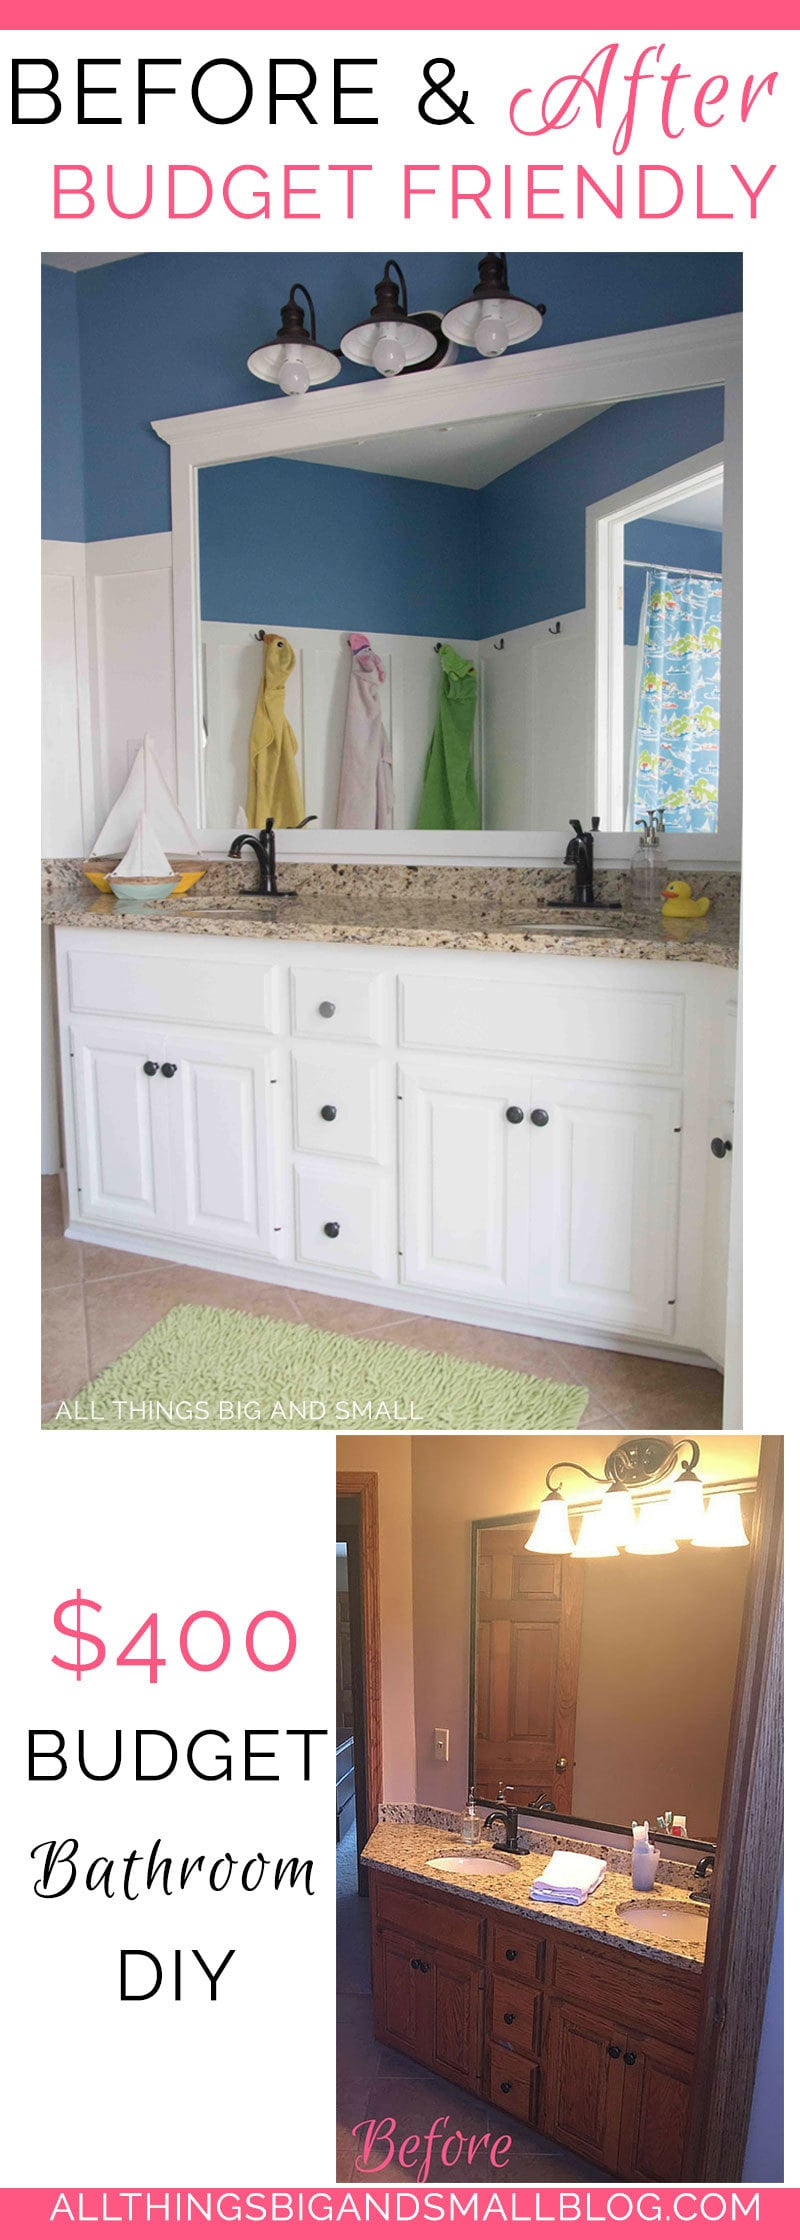 budget friendly bathroom | DIY bathroom | How to Paint Cabinets | Bathroom DIY | ALL THINGS BIG AND SMALL